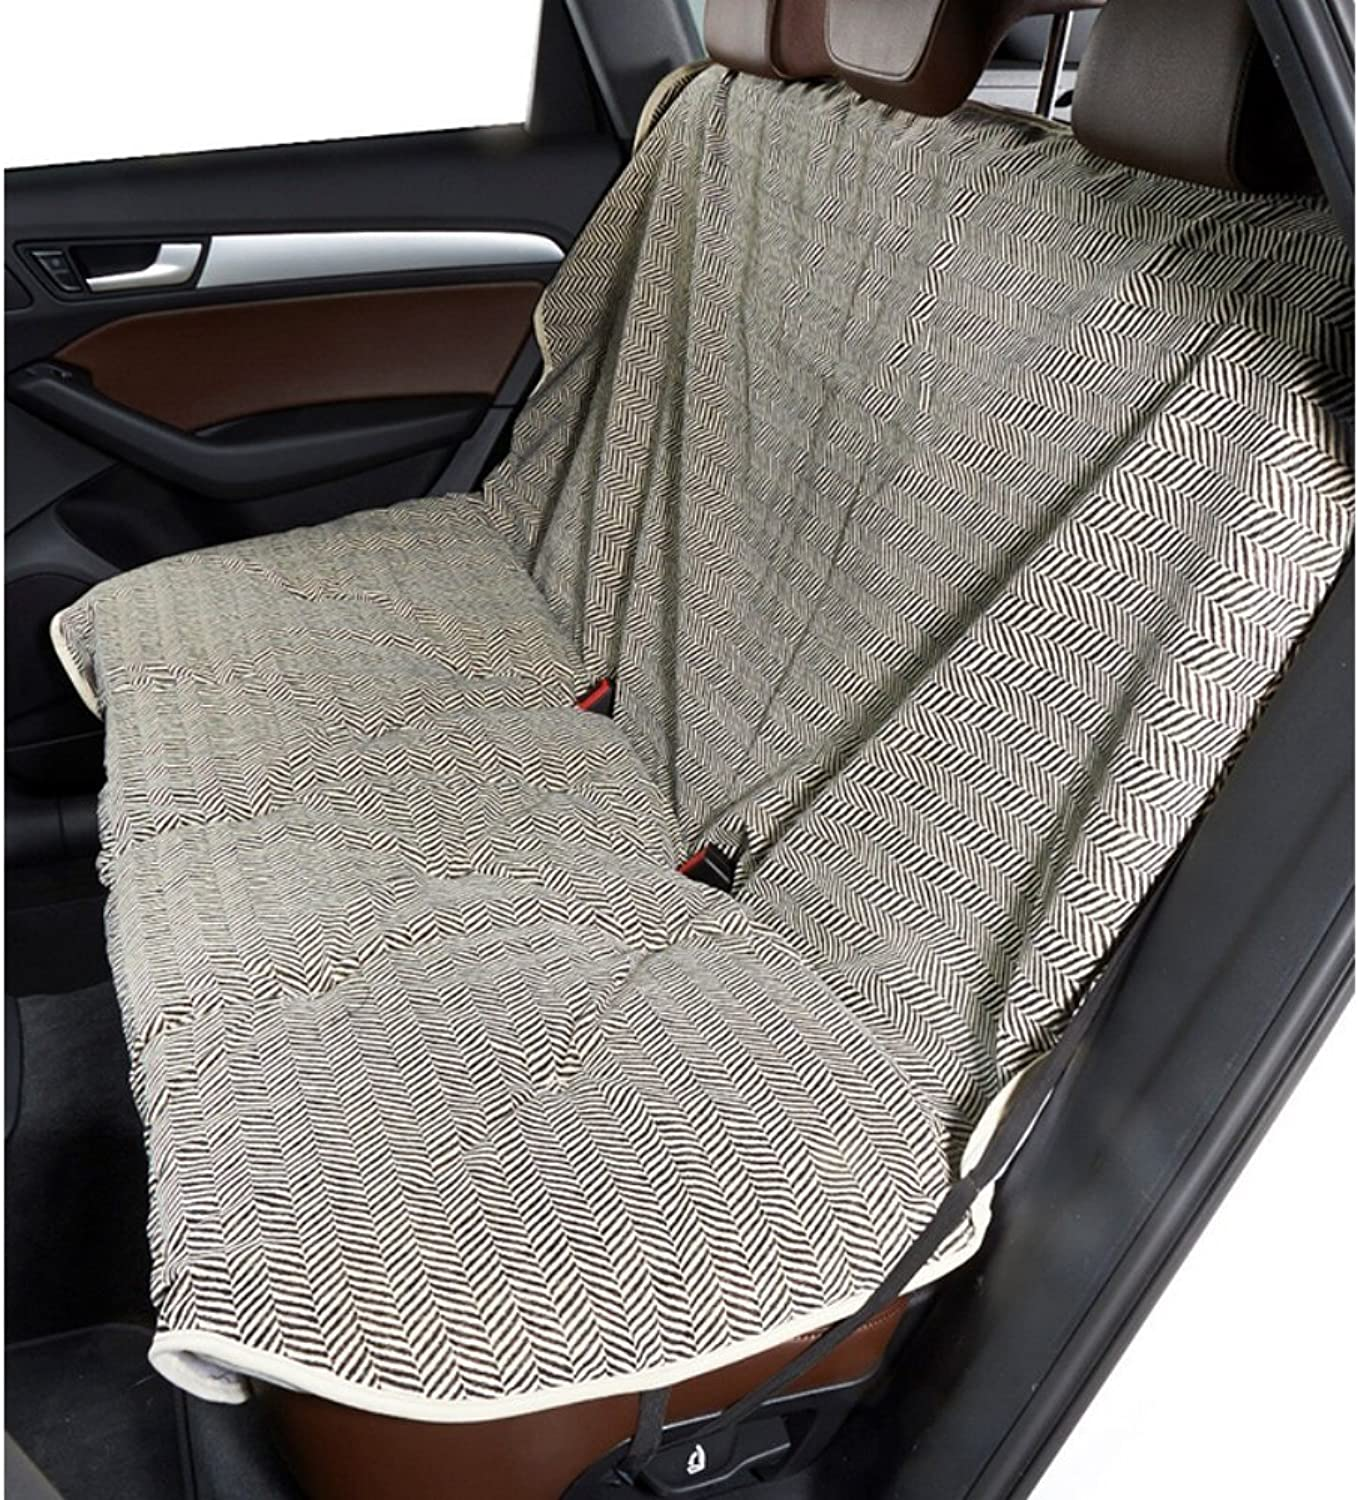 Bowsers Diamond Series Microvelvet Luxury Back Seat Cover